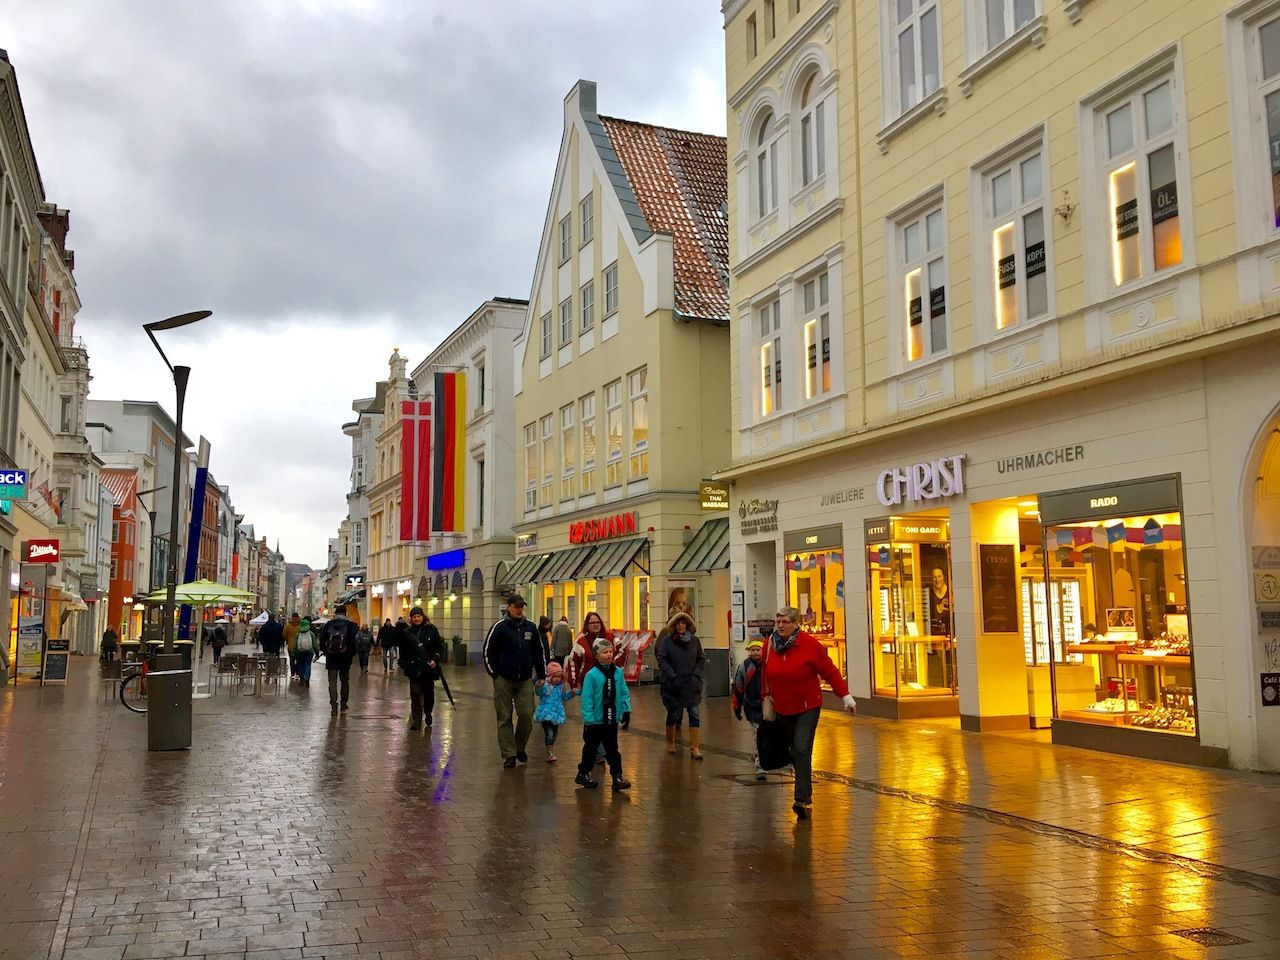 Ordinary people walk on Holm street in Flensburg old town